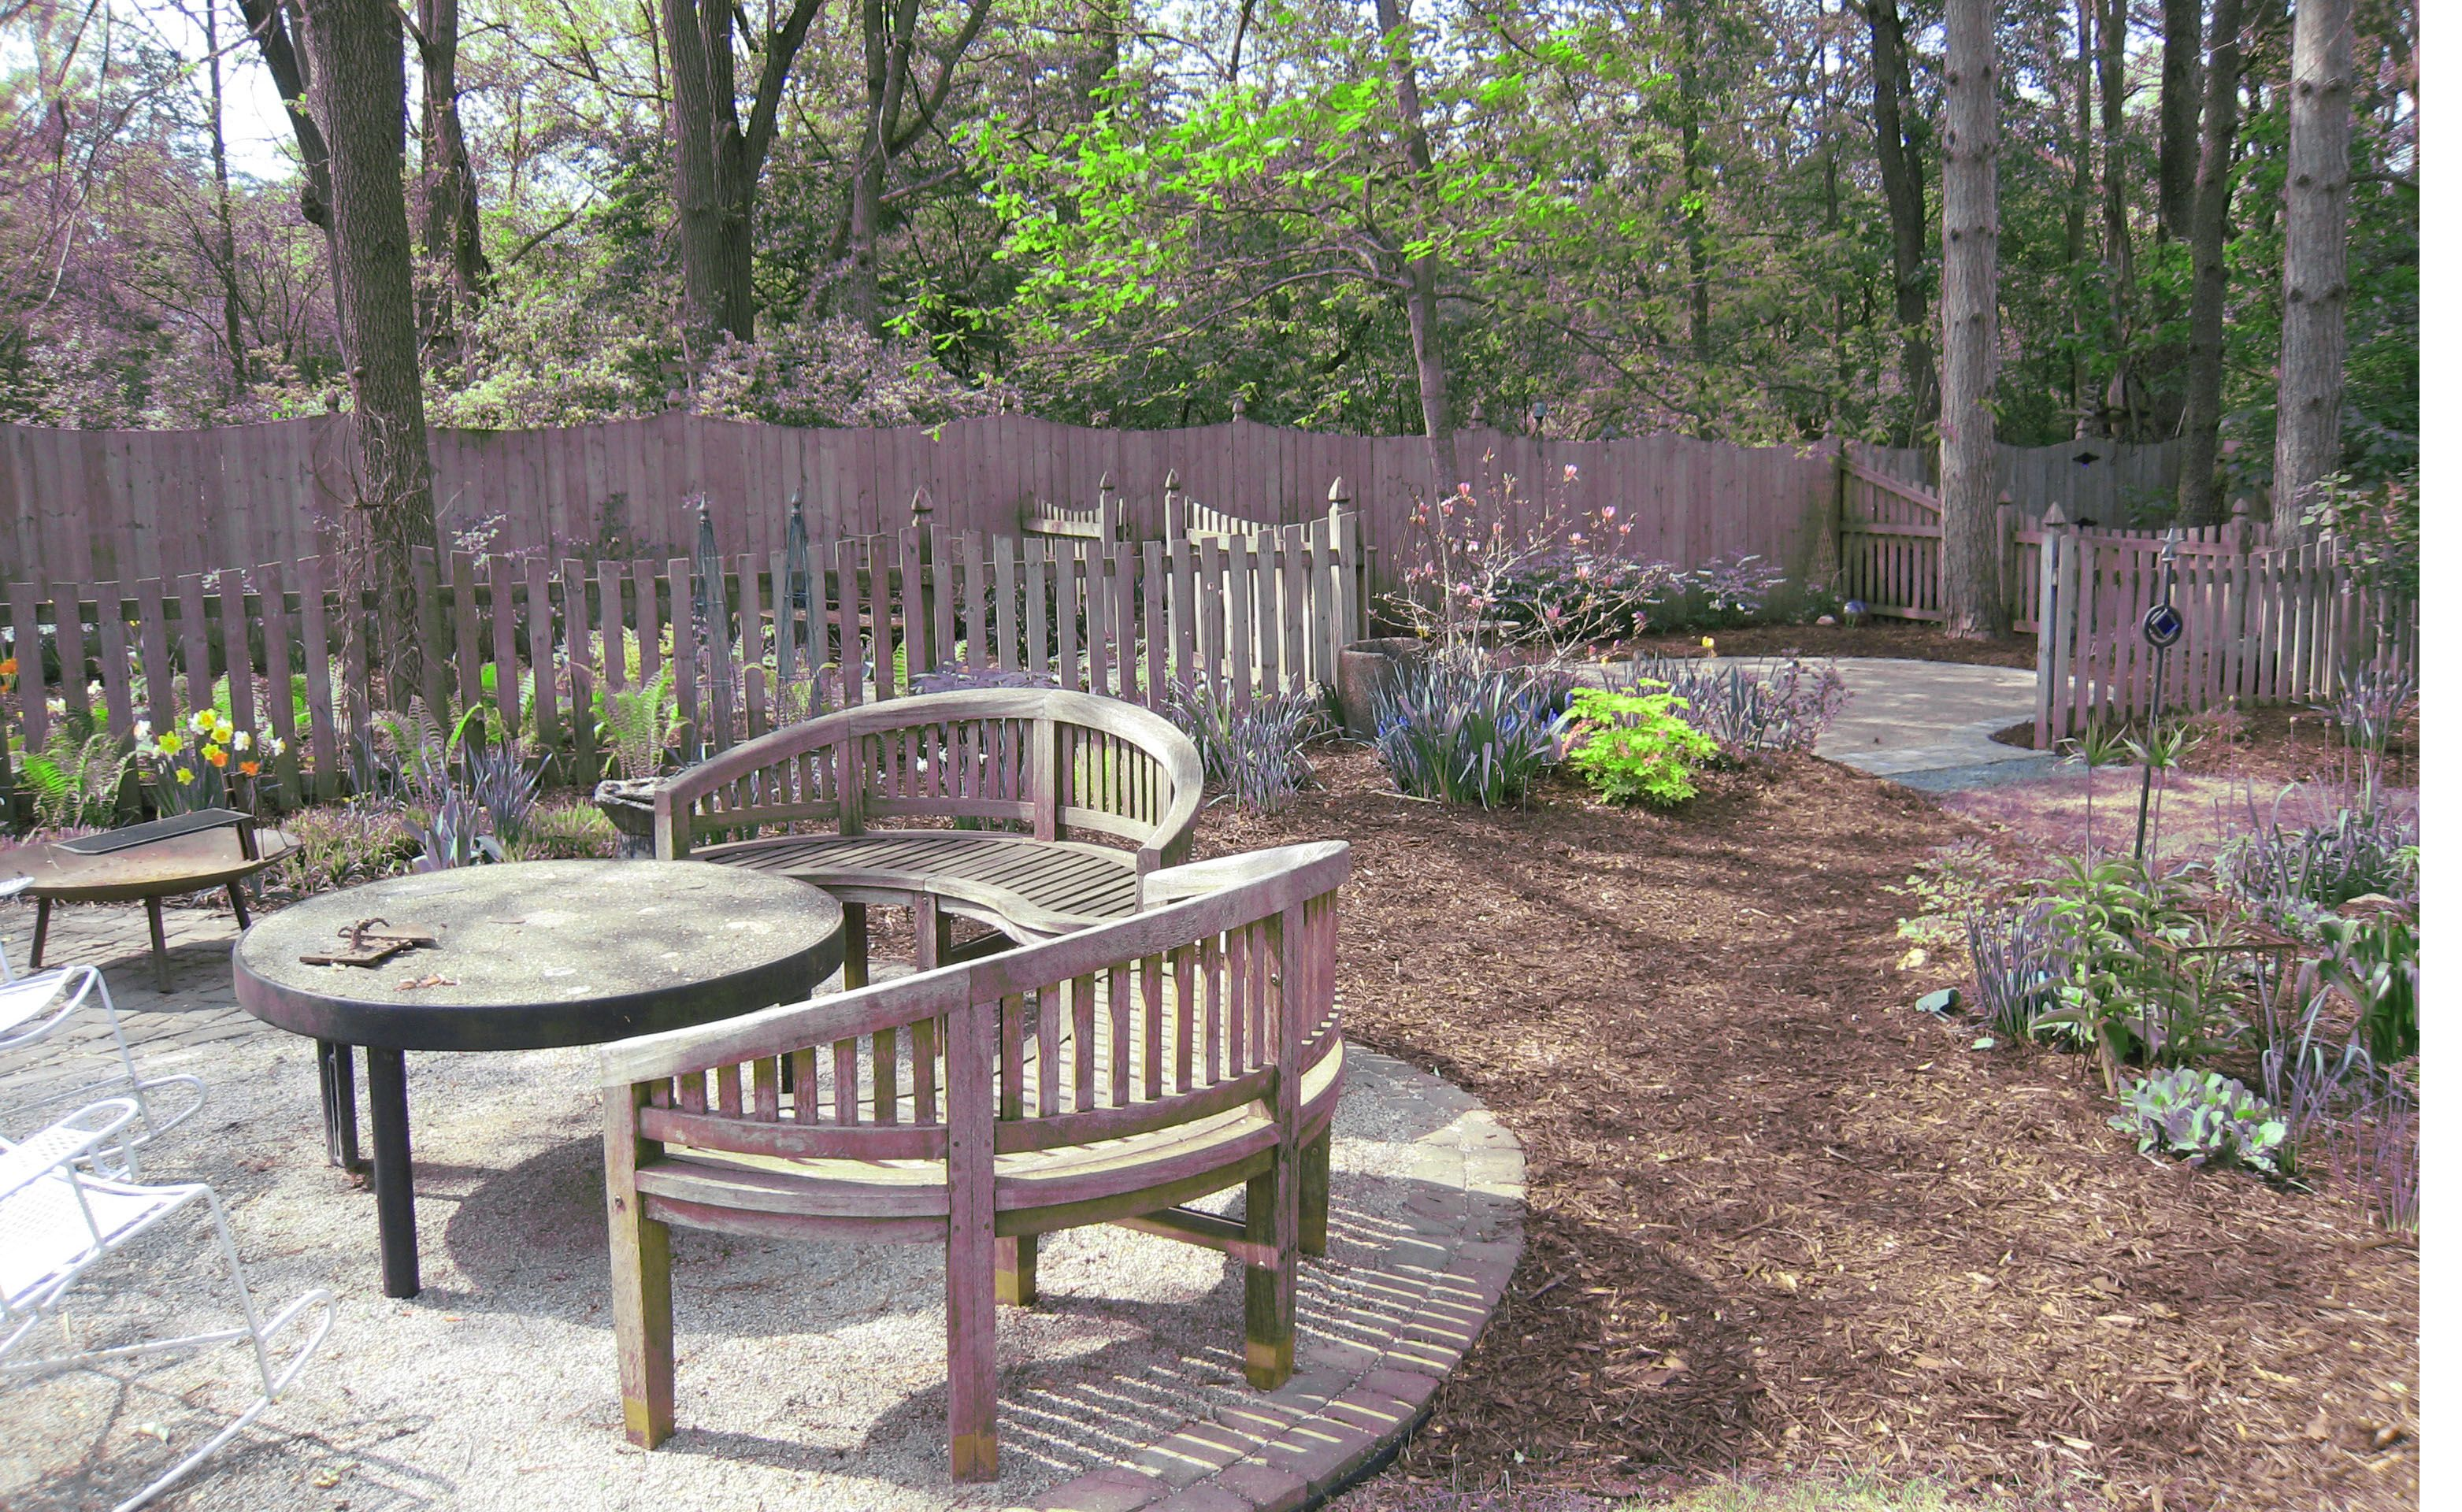 Patio Of Crushed Limestone Outlined In Pavers Makes For An Intimate Garden  Seating Area. Kim